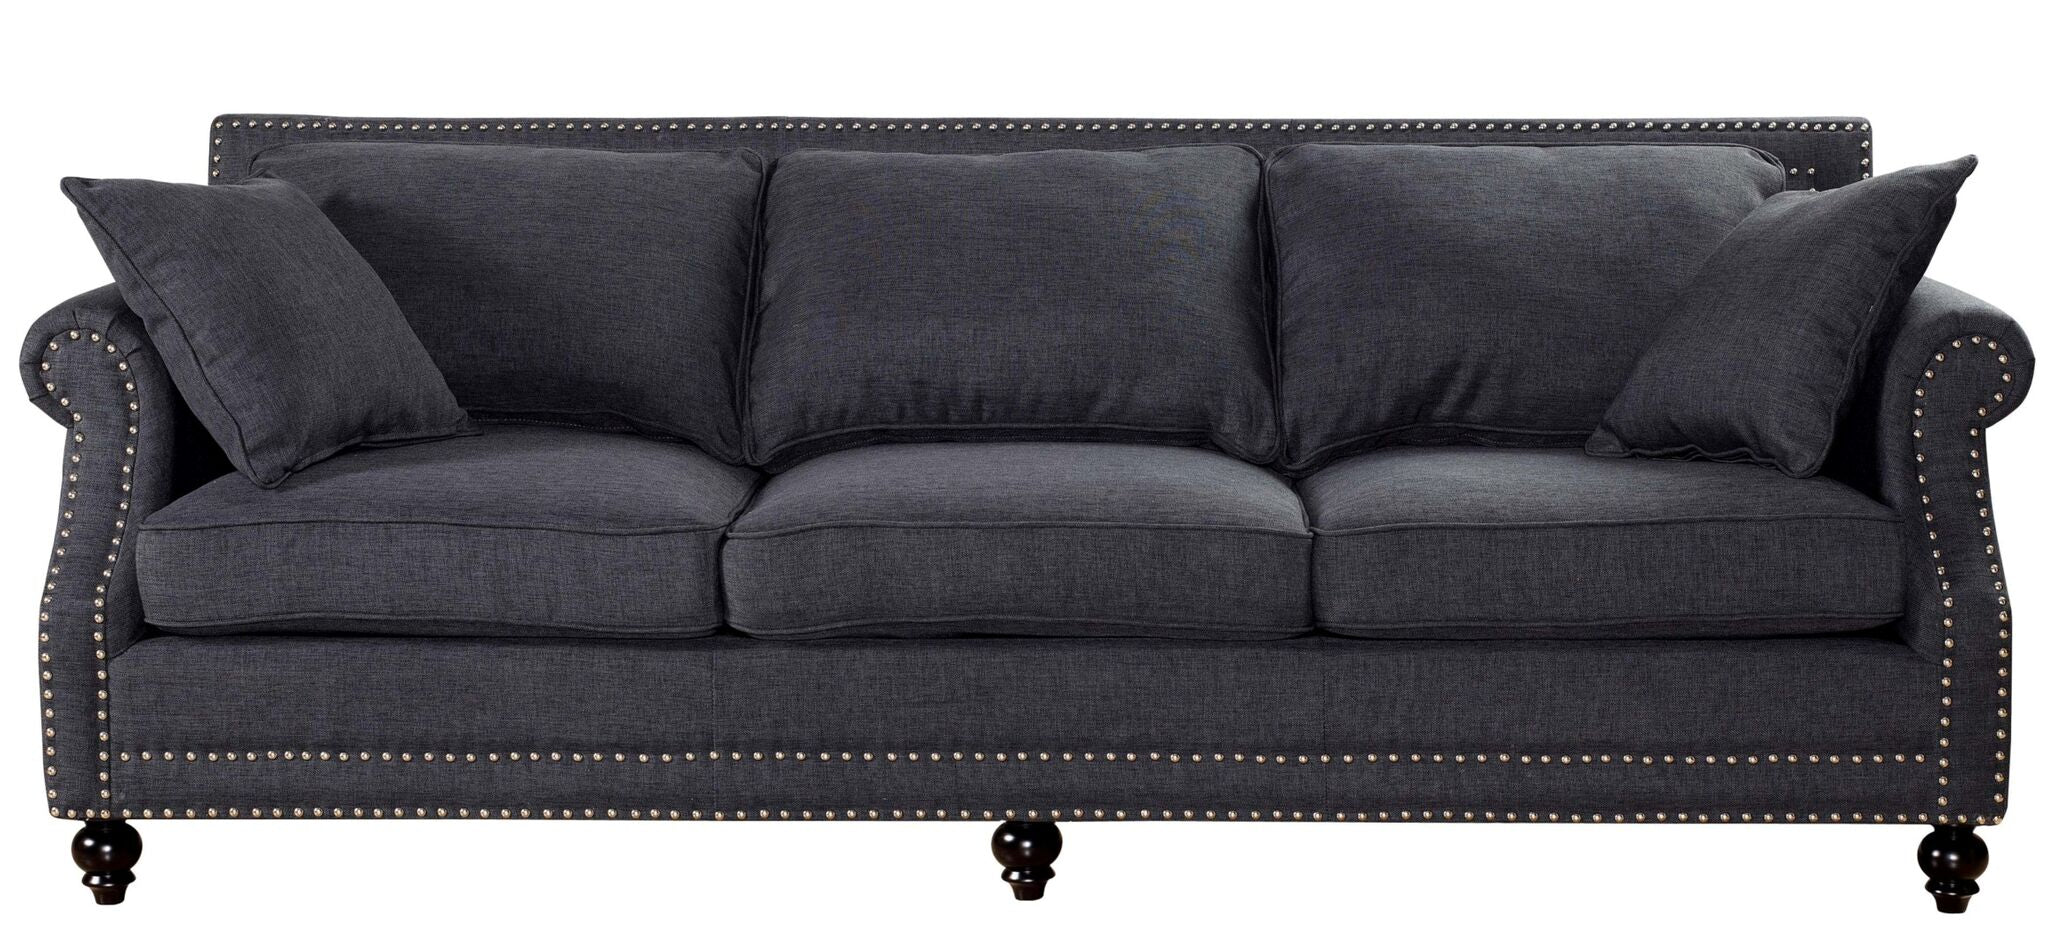 Camden Grey Linen Sofa - State.Mint Home & Garden